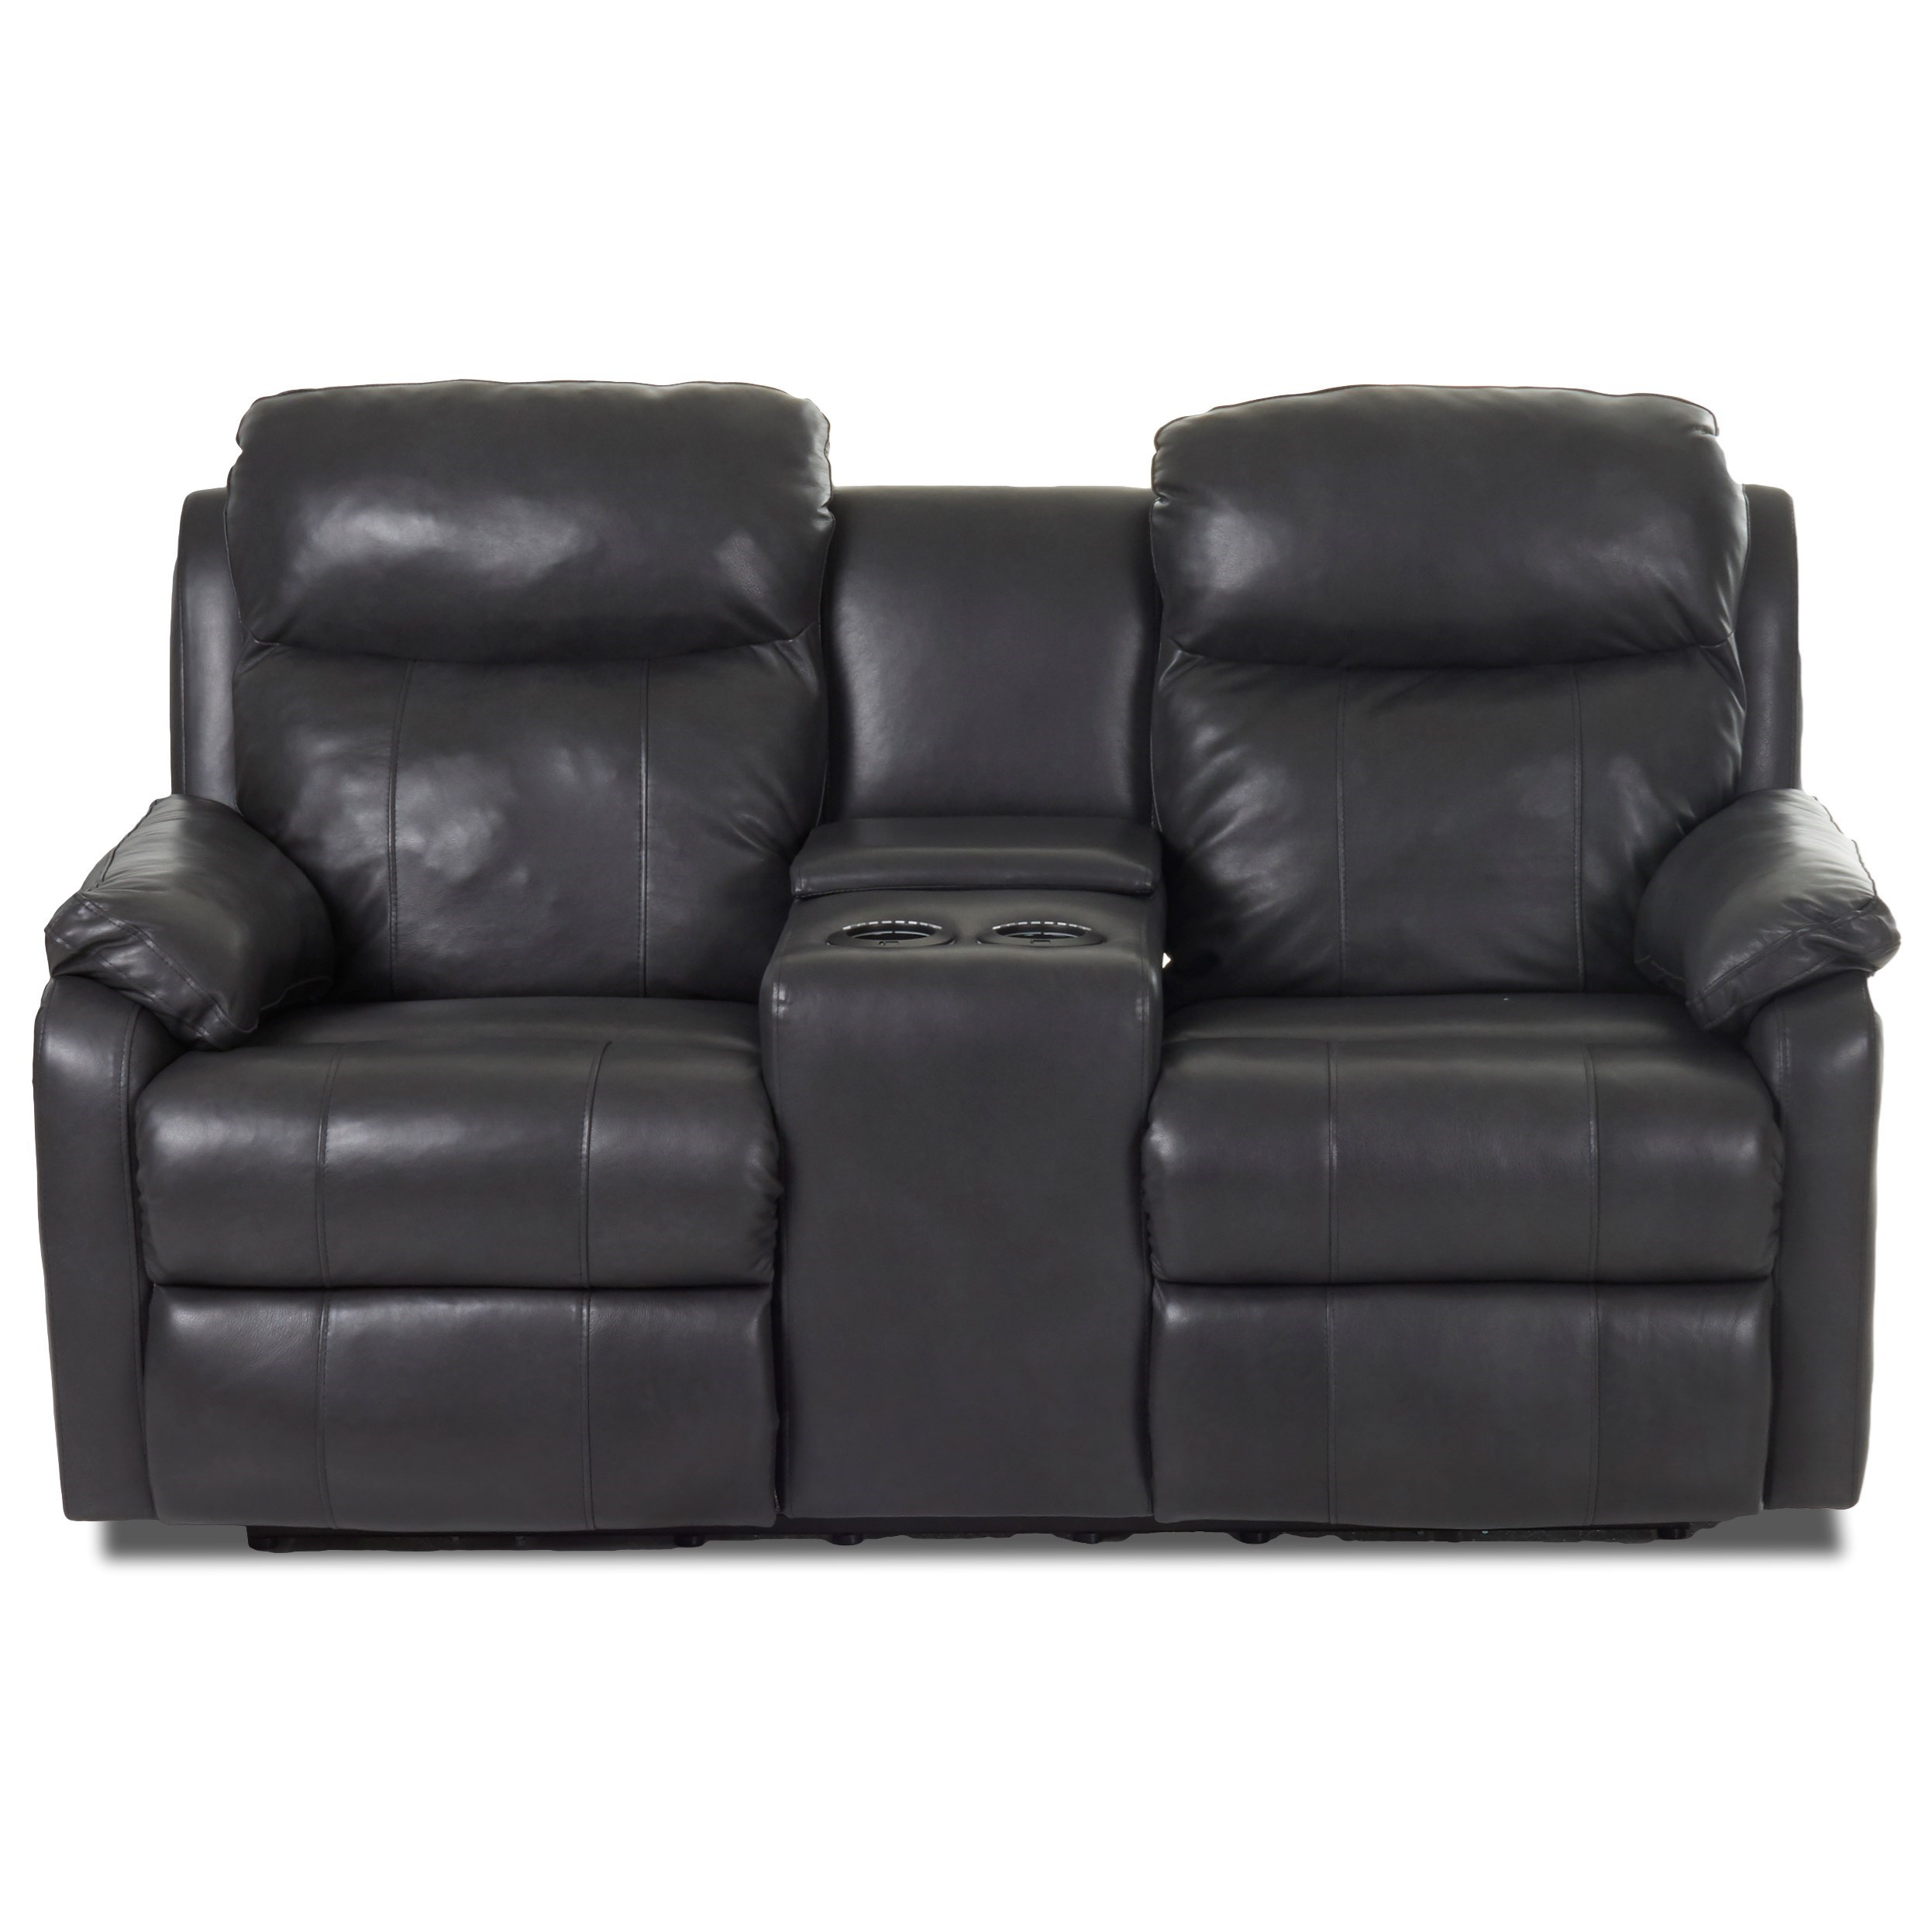 Solitaire Power Reclining LS w/ Console & Pwr Head by Klaussner at Catalog Outlet